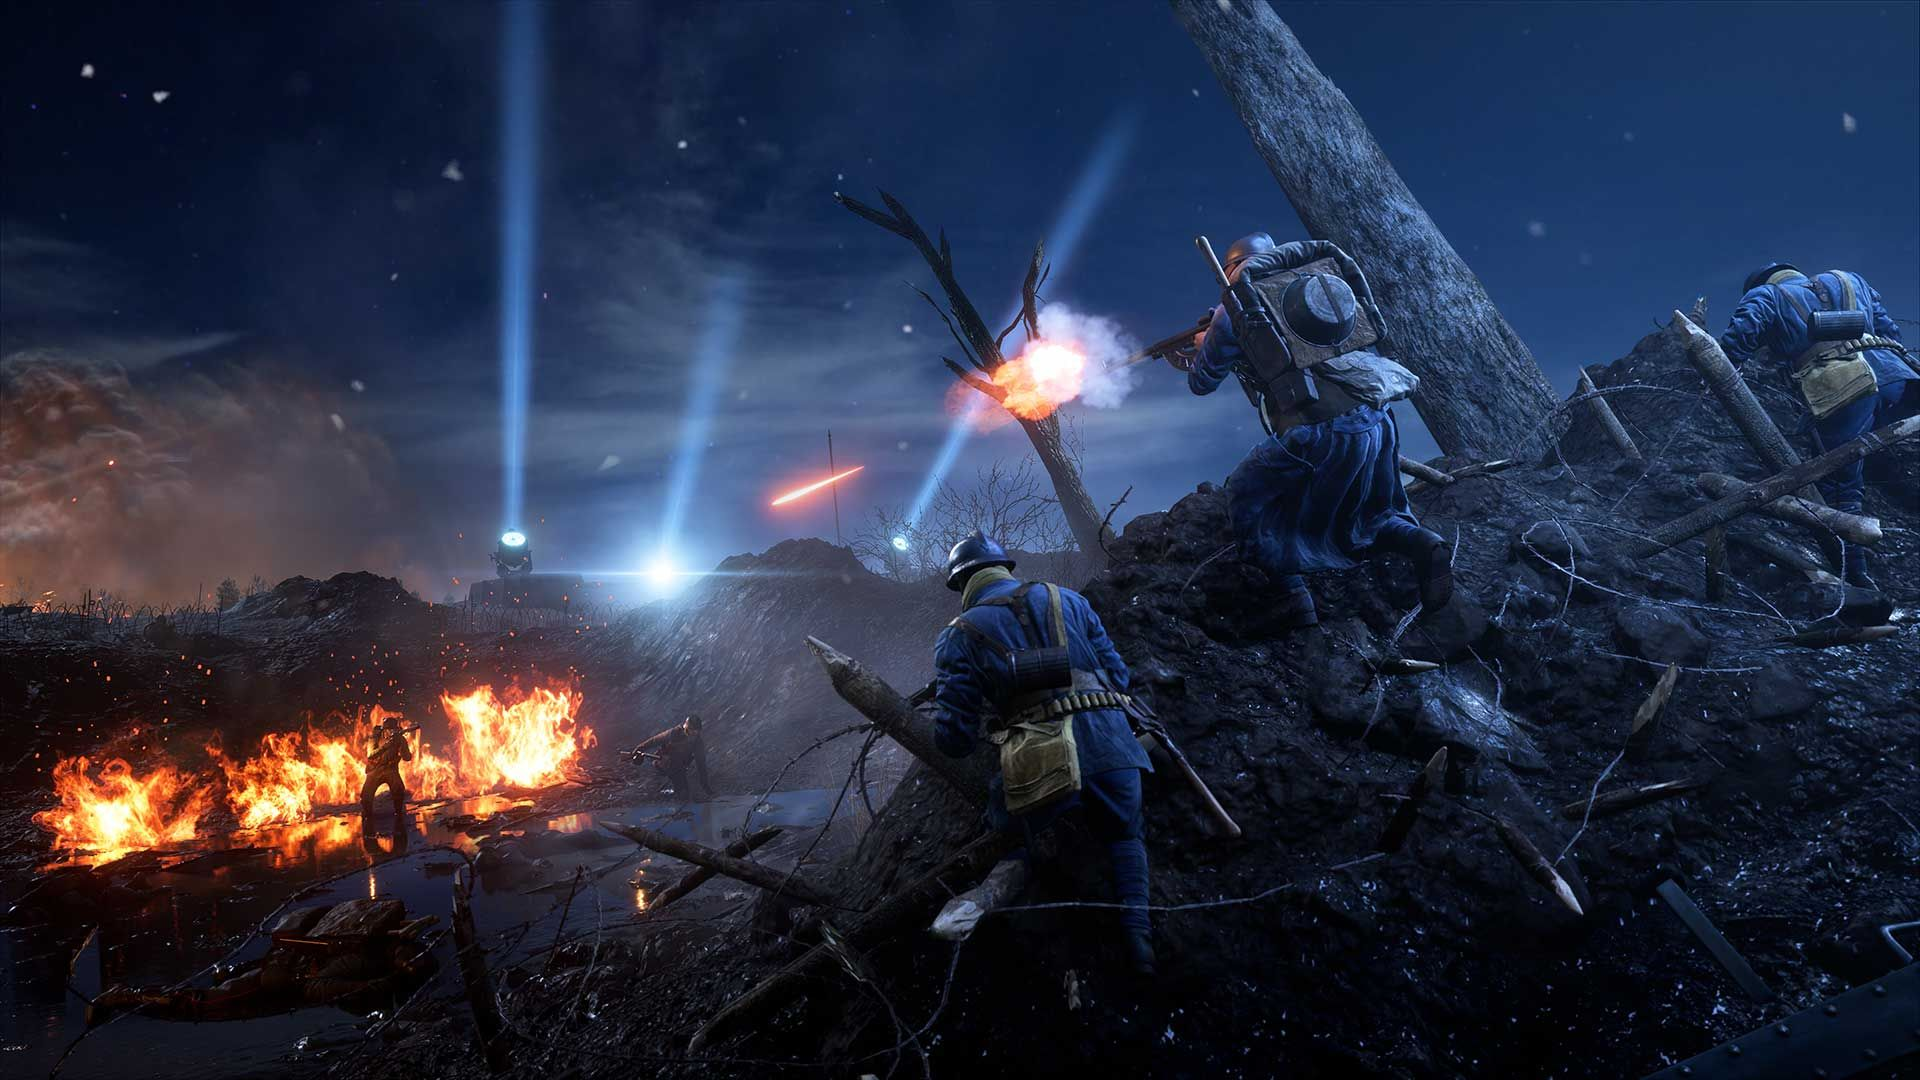 Next EA Battlefield Title Will Take Players Back To World War II